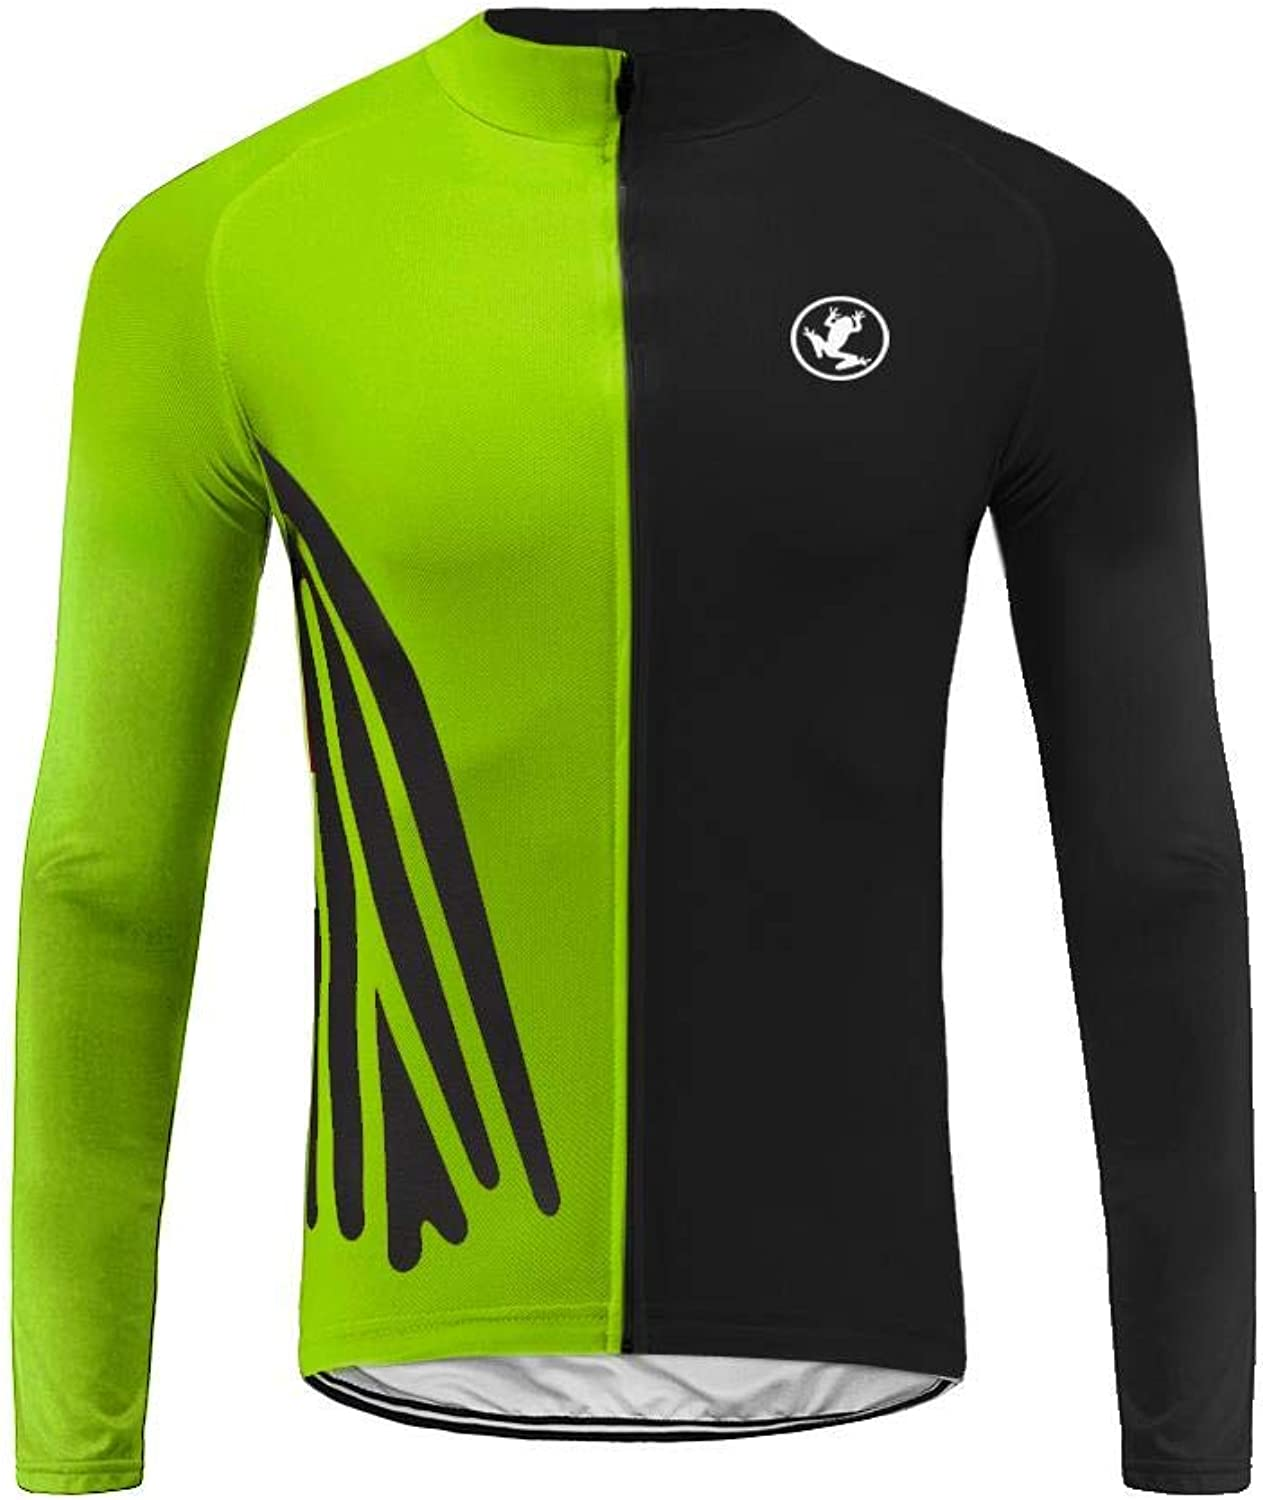 Uglyfrog Men's Long Sleeve Shirt Cycling Jerseys Warm Winter Riding Clothing Great Gift for Bicycle